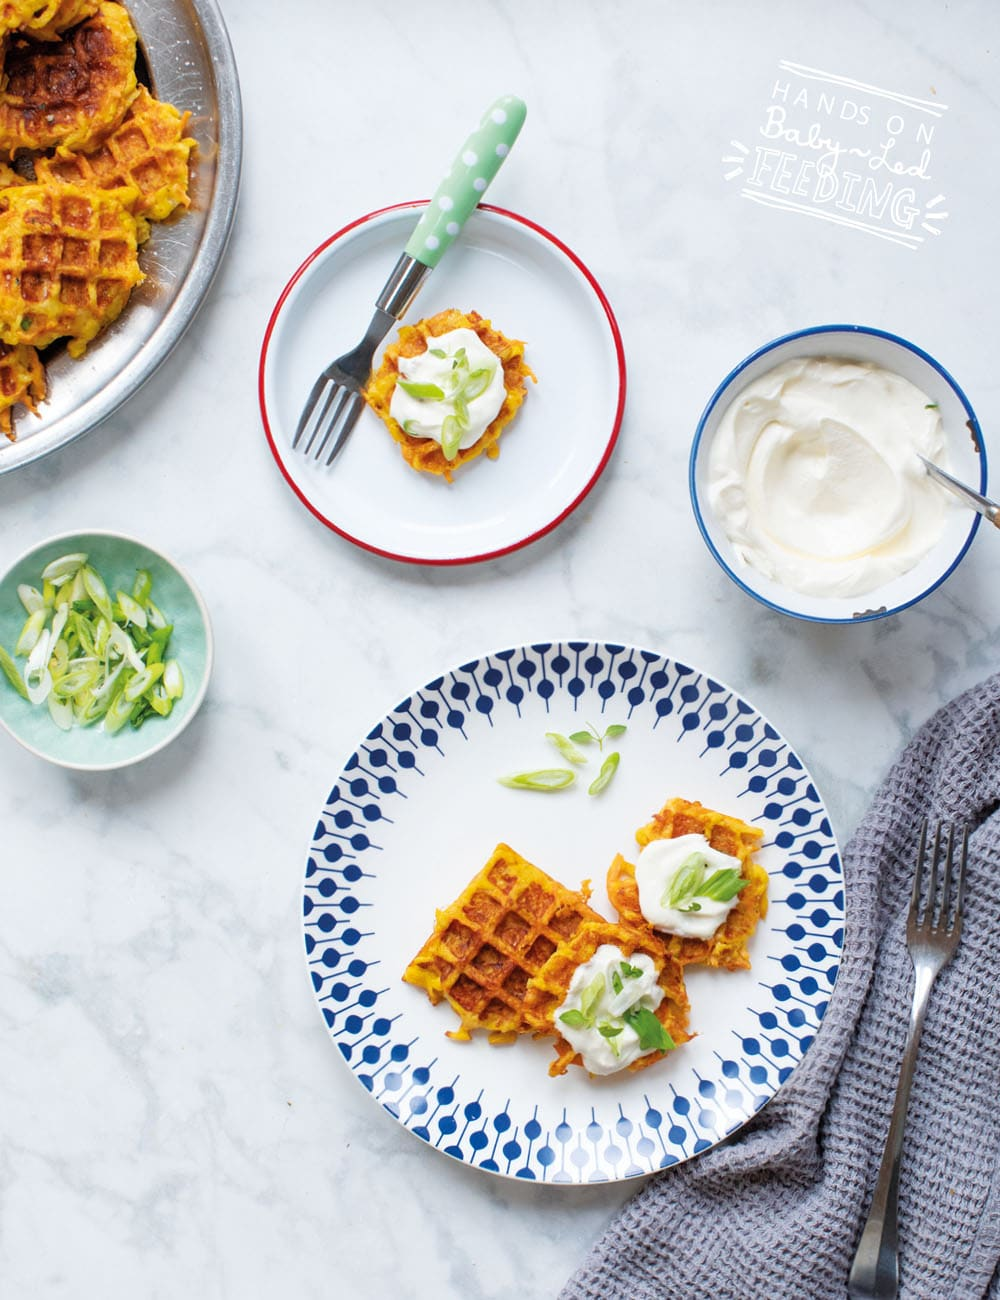 Baby Led Weaning Carrot and Cheese Waffles Recipe Images4